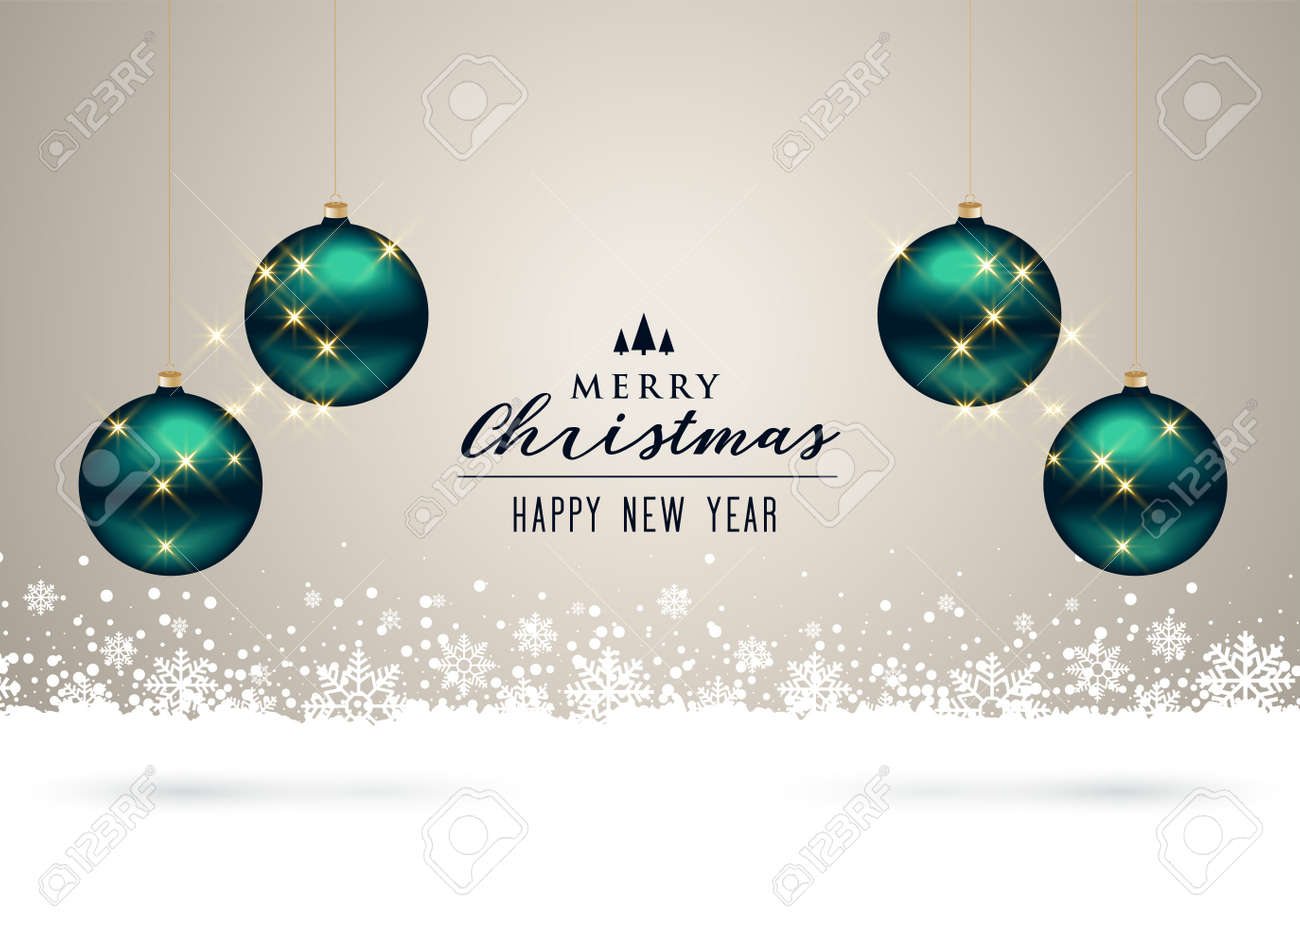 christmas background with balls and snowflakes decoration - 150206694